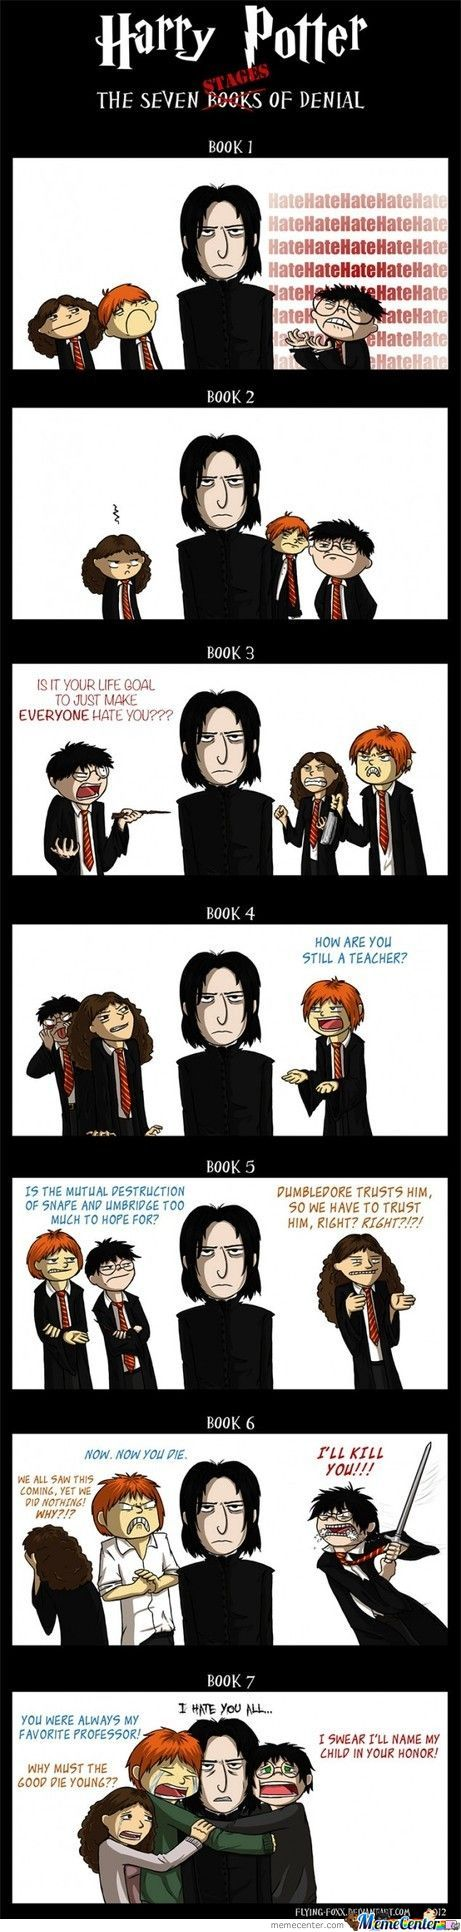 Harry Potter The Seven Stages Of Denial